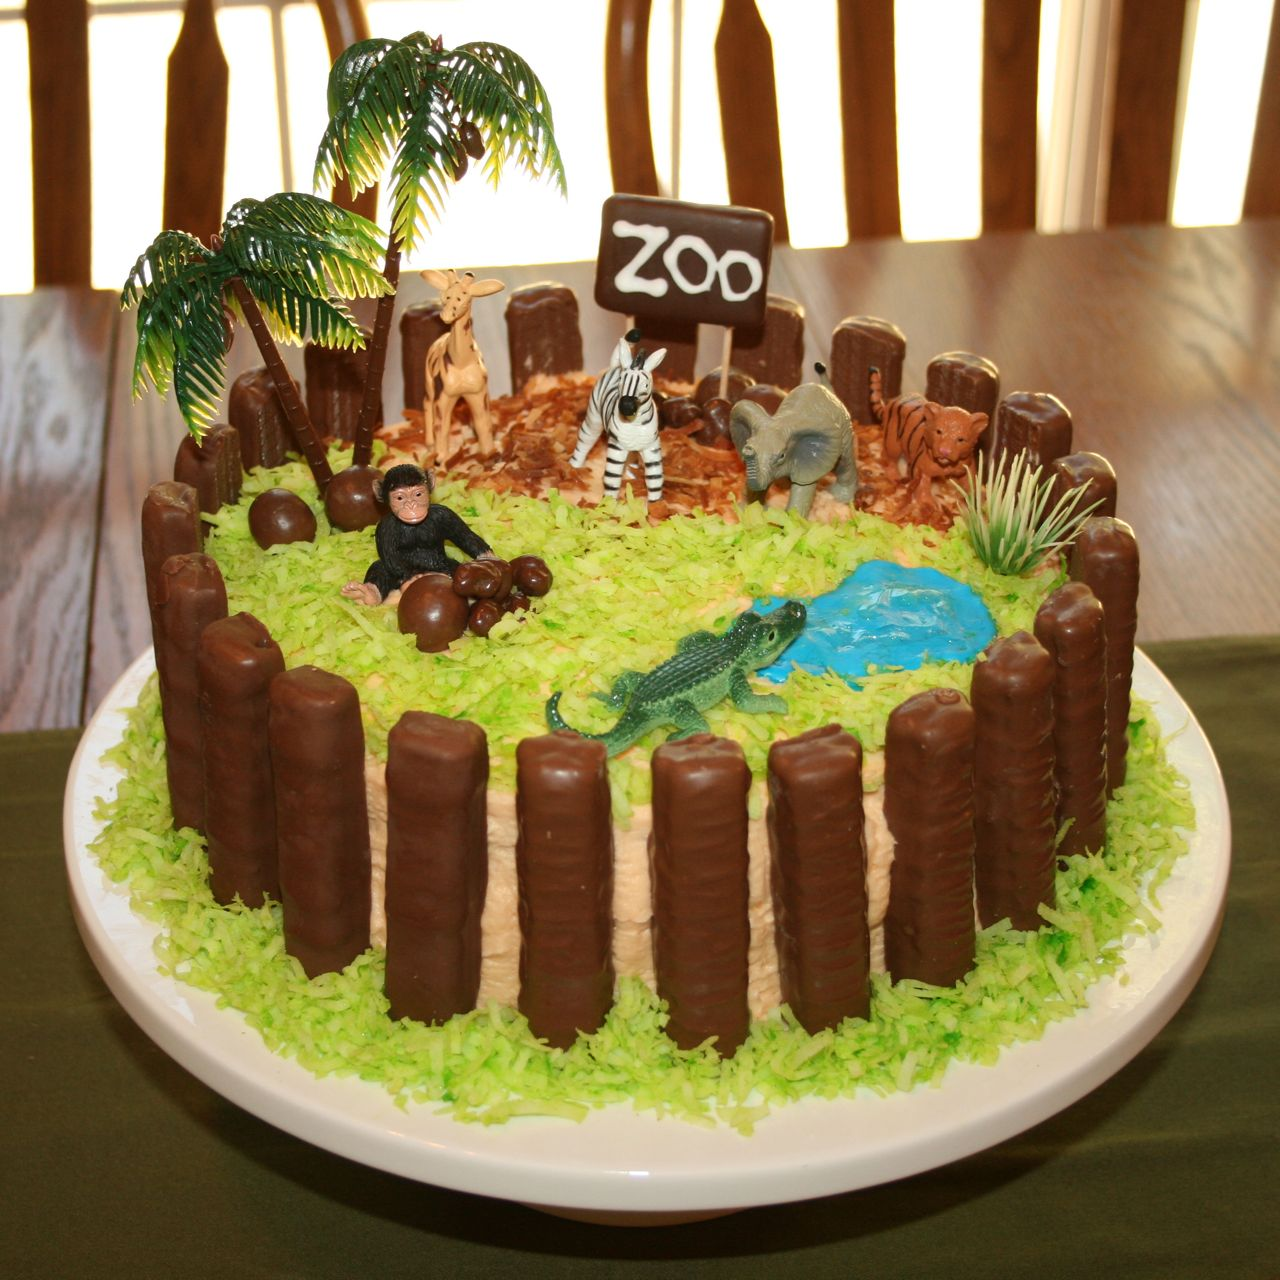 Cake Decoration Zoo : Zoo Birthday Cake on Pinterest Zoo Cake, Safari Cakes ...